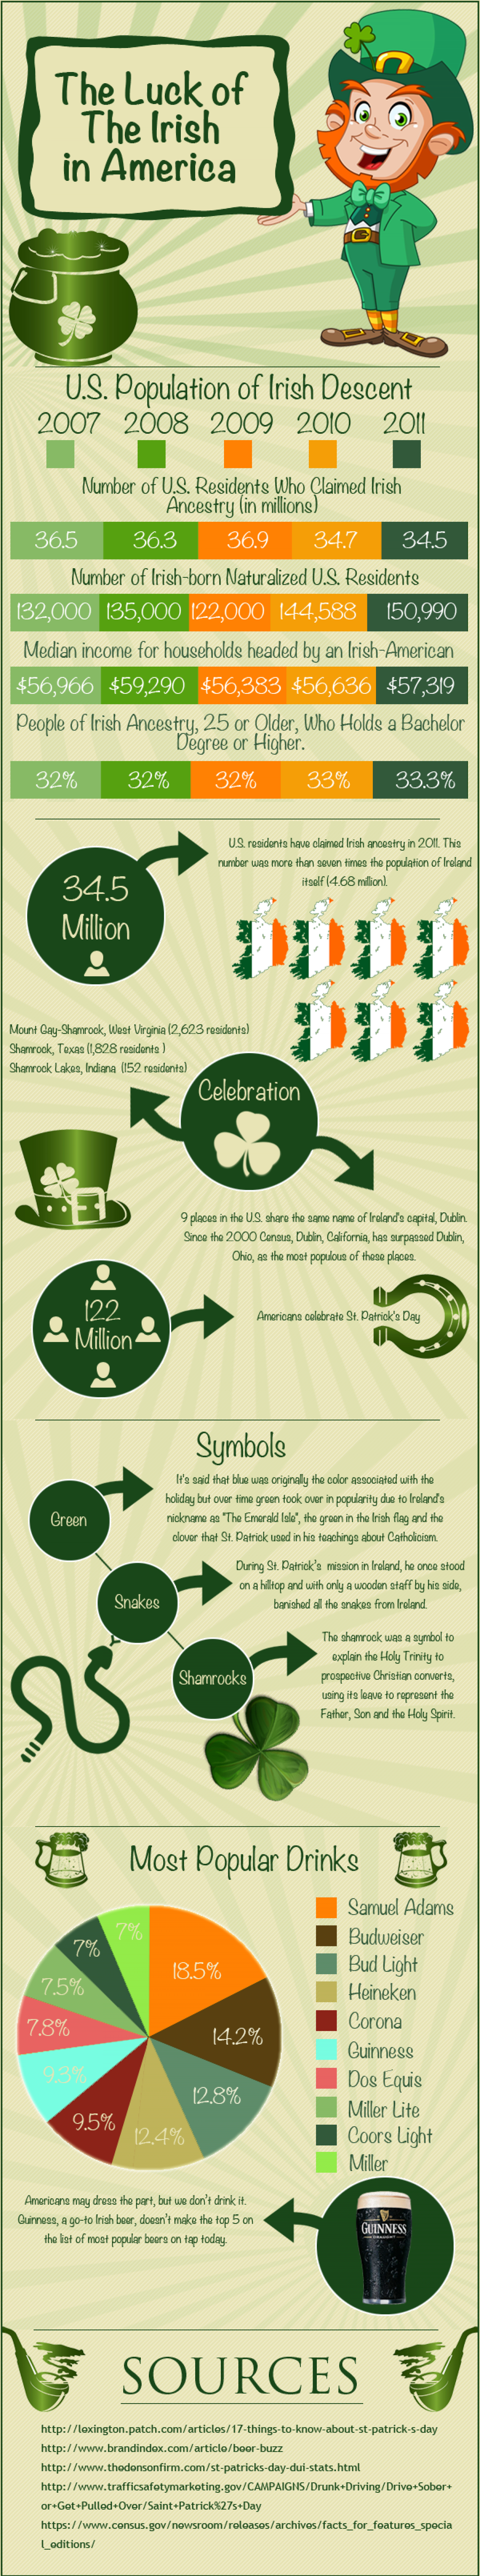 The Luck of The Irish in America Infographic